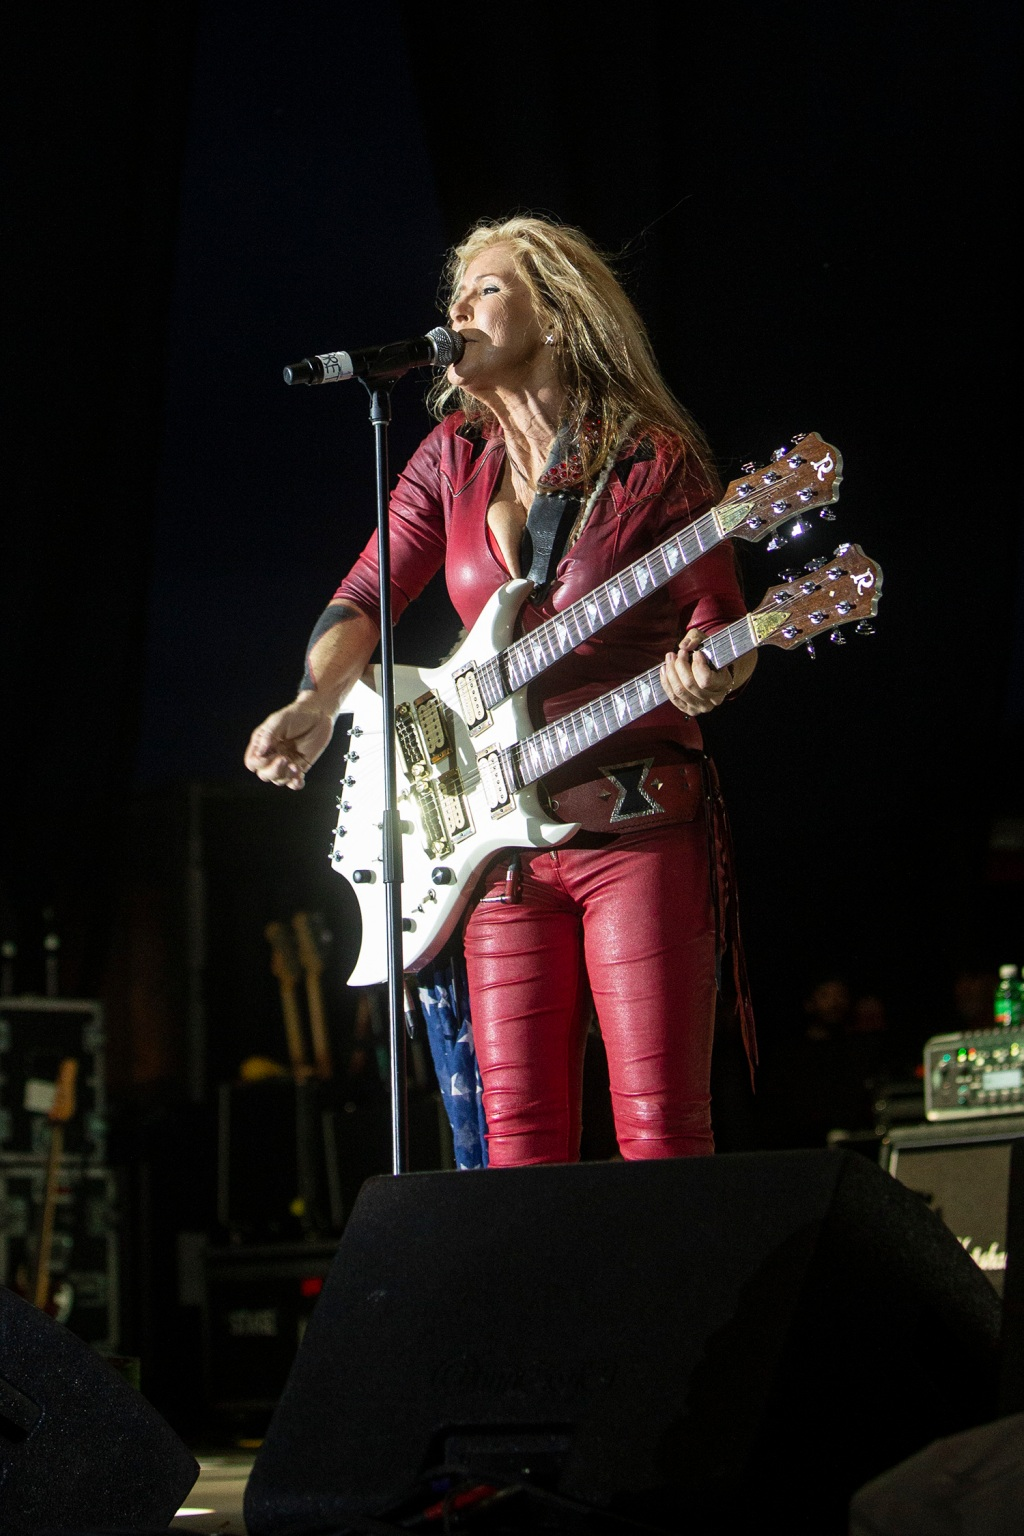 Lita Ford with her epic B.C. Rich Bich Double Neck.